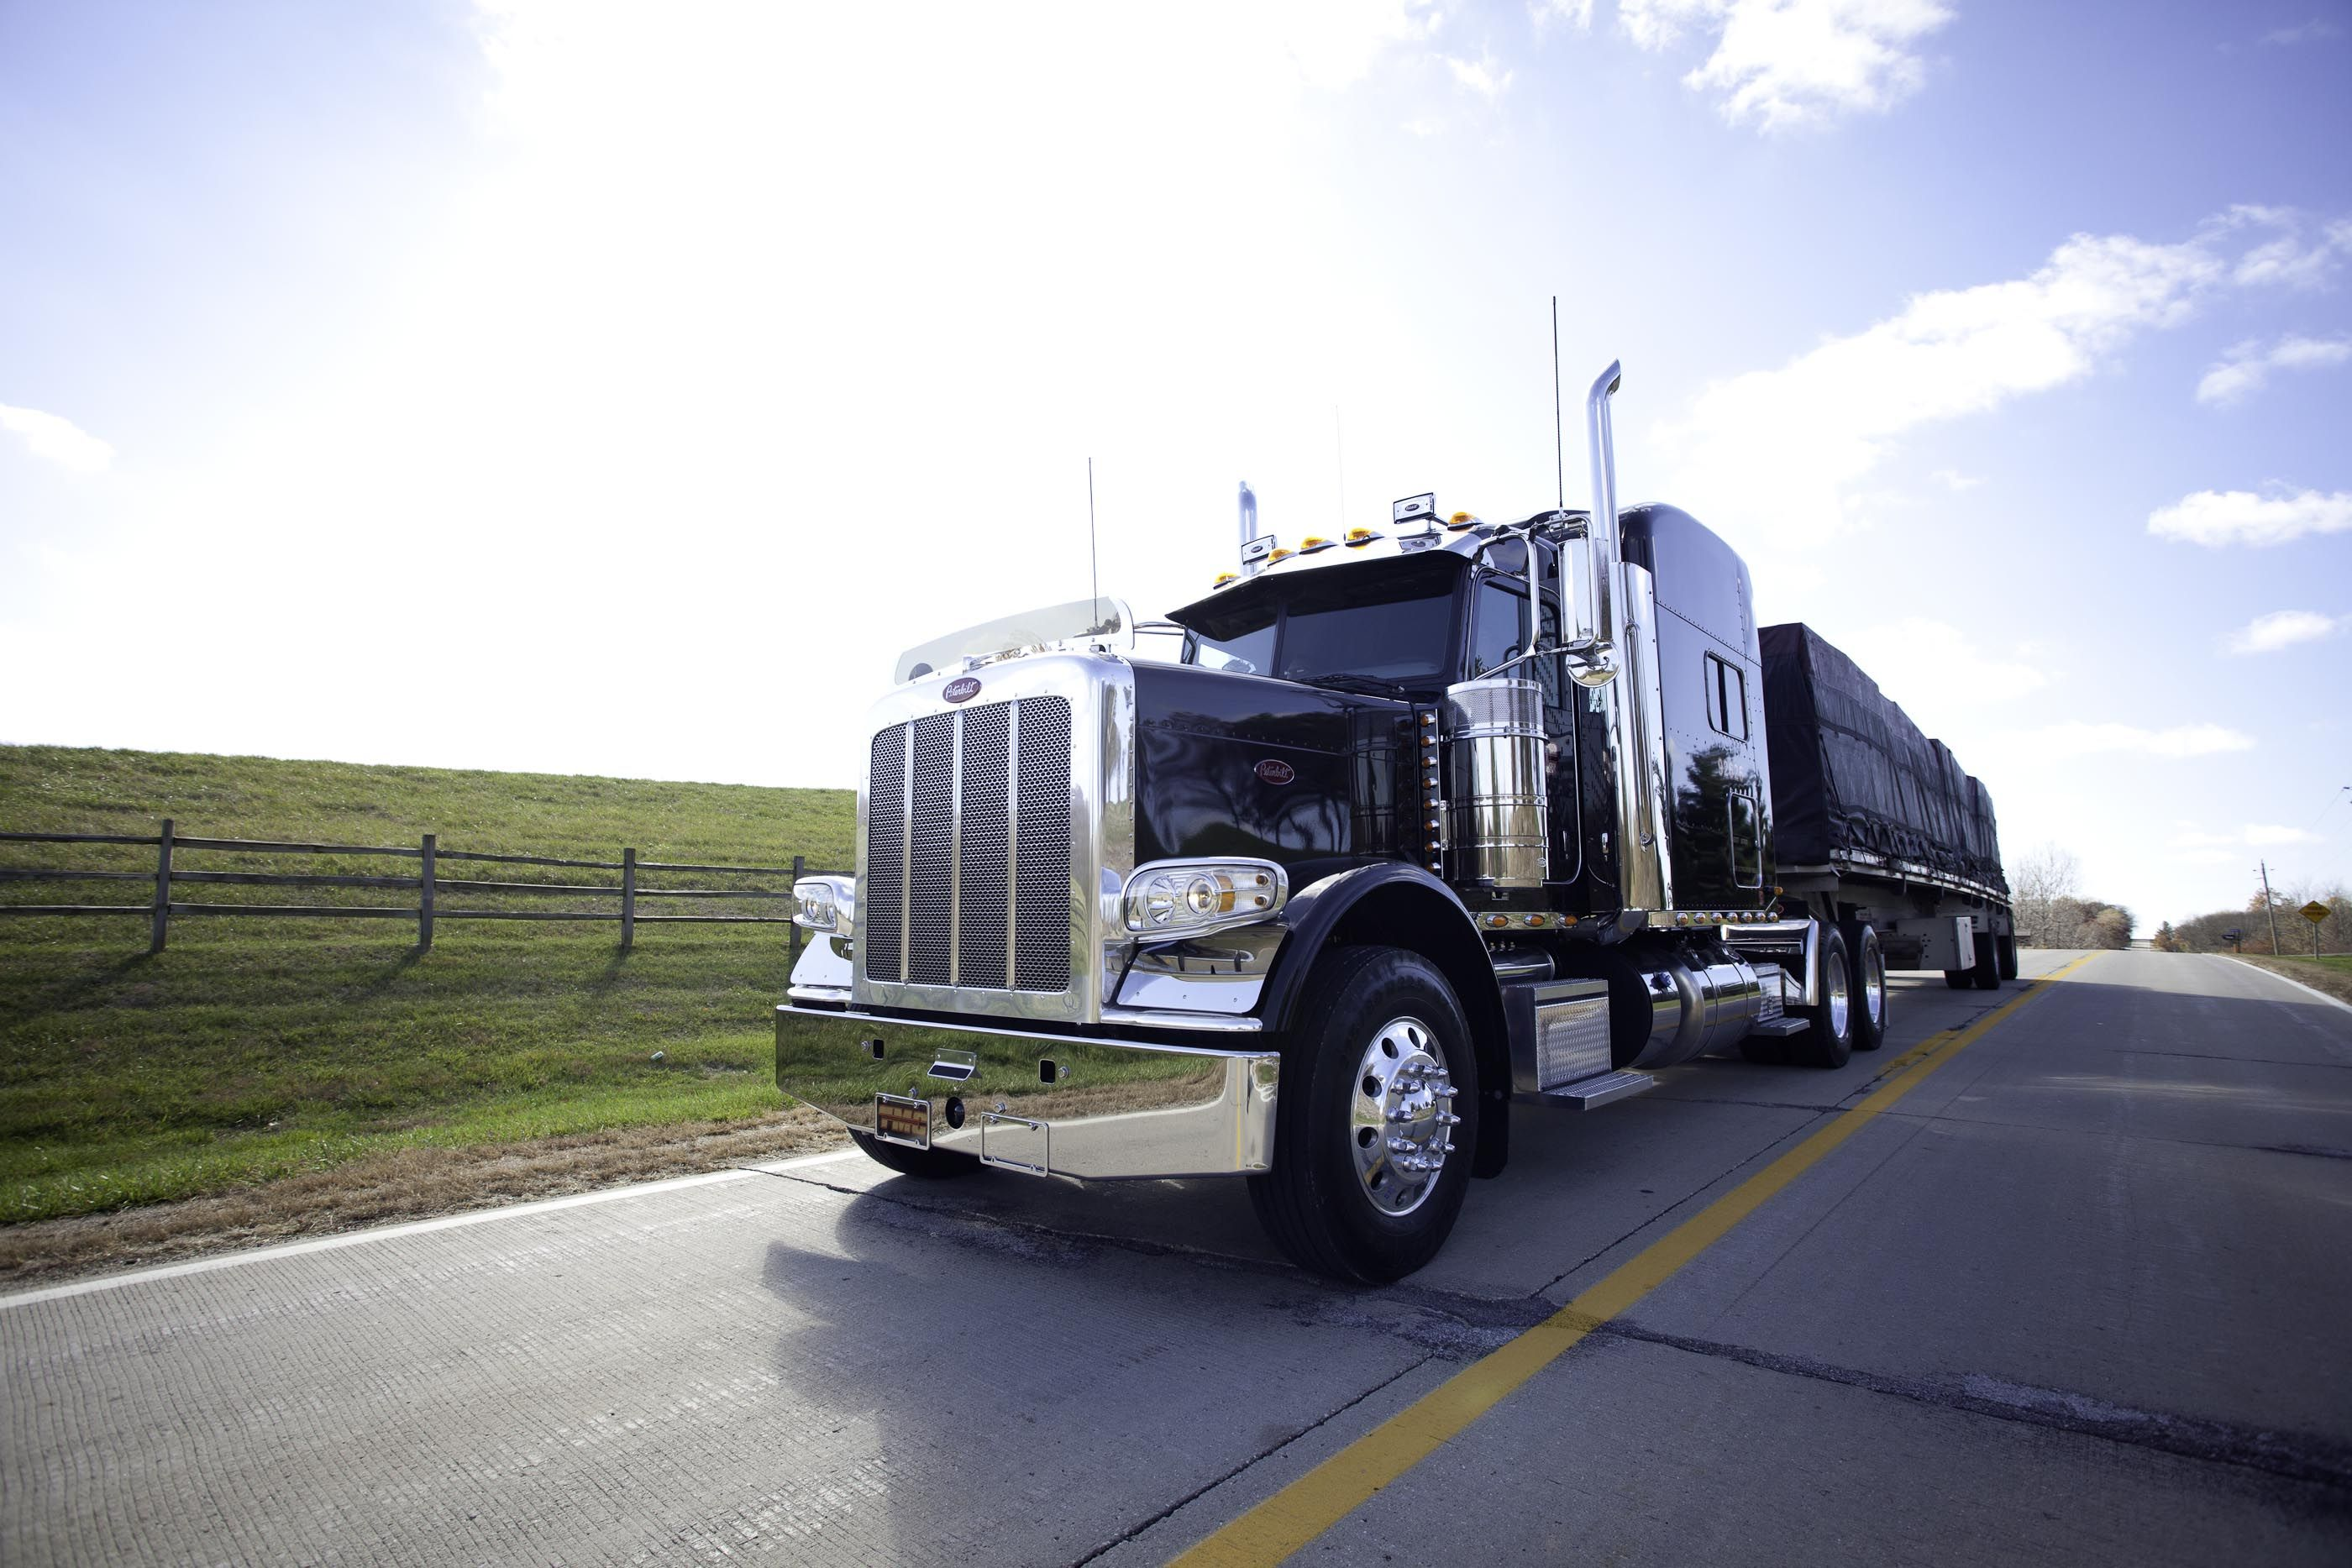 Tmc Transportation Continues A Mission Of Excellence Truck Driving Jobs Trucks Trucking Companies